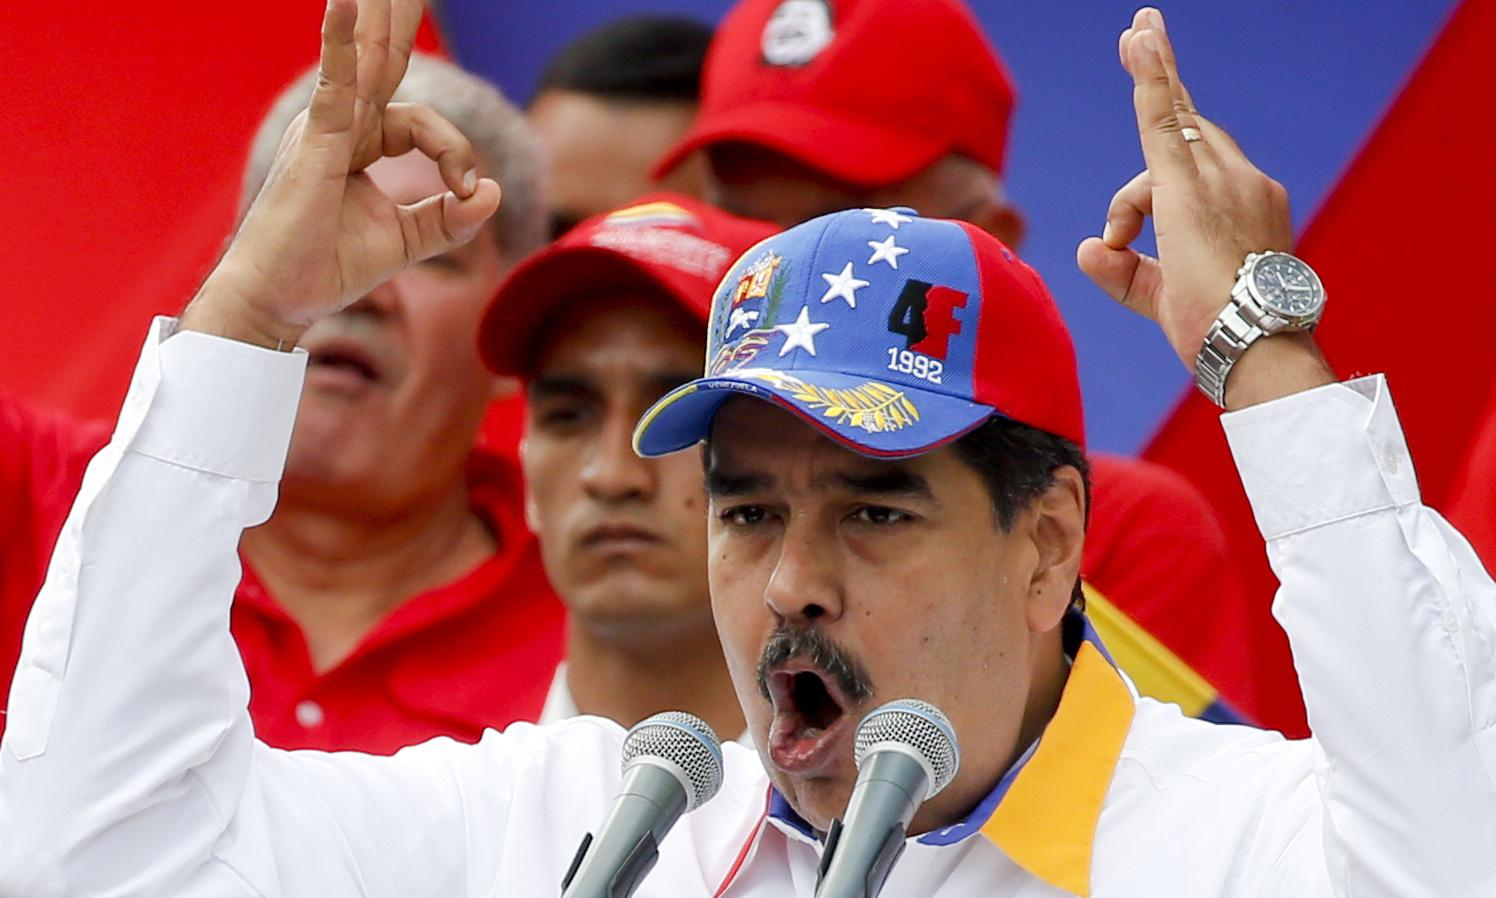 Venezuela opposition fears crackdown after Maduro threatens arrests